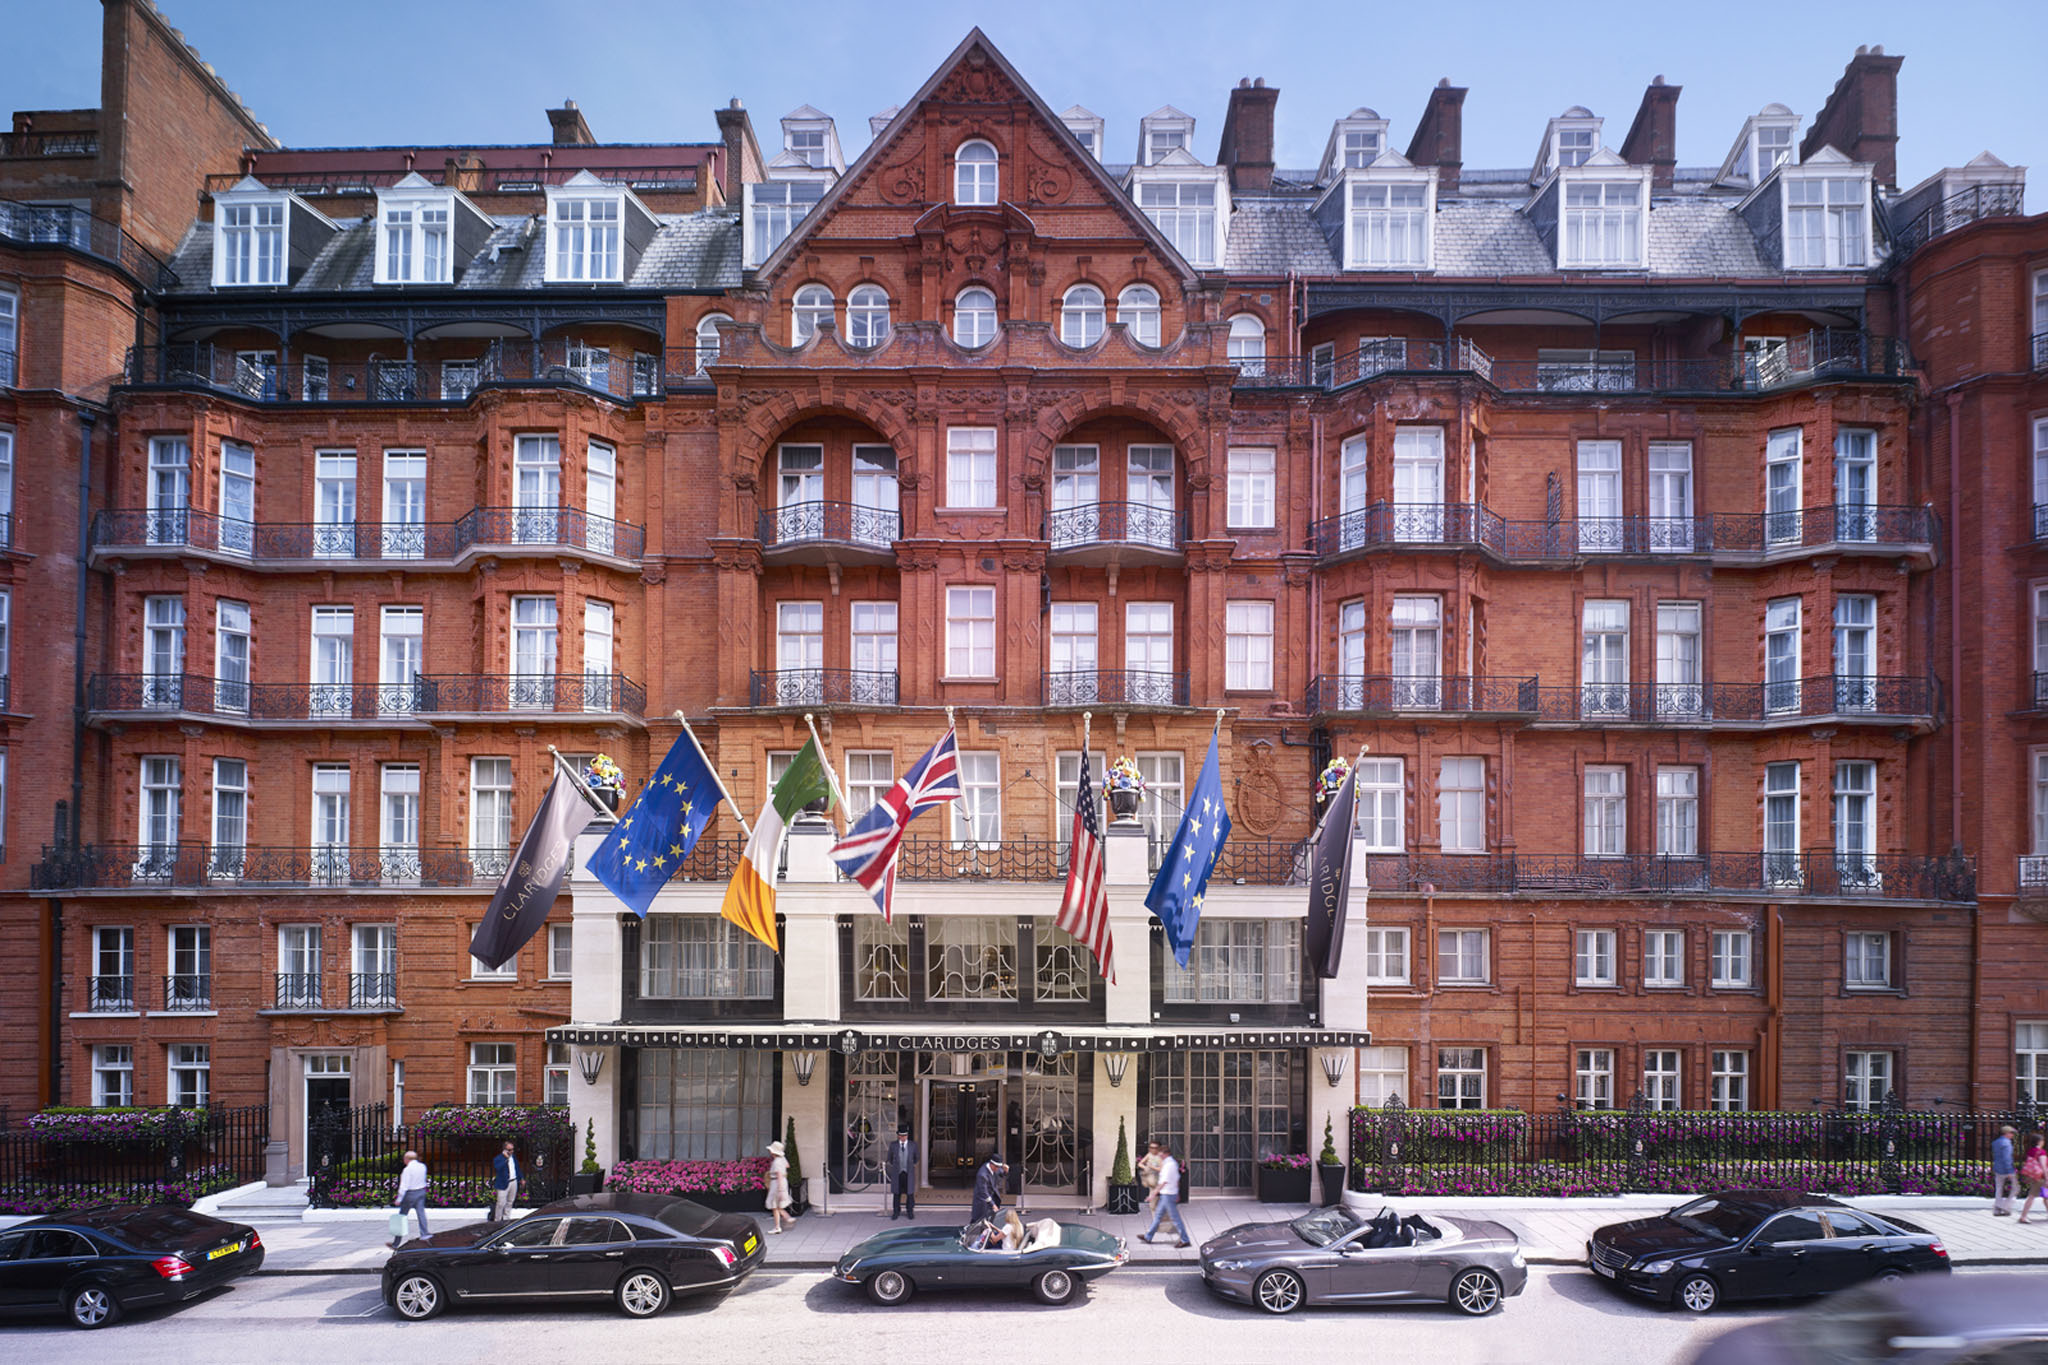 Claridge's has offered beds to NHS staff and carers